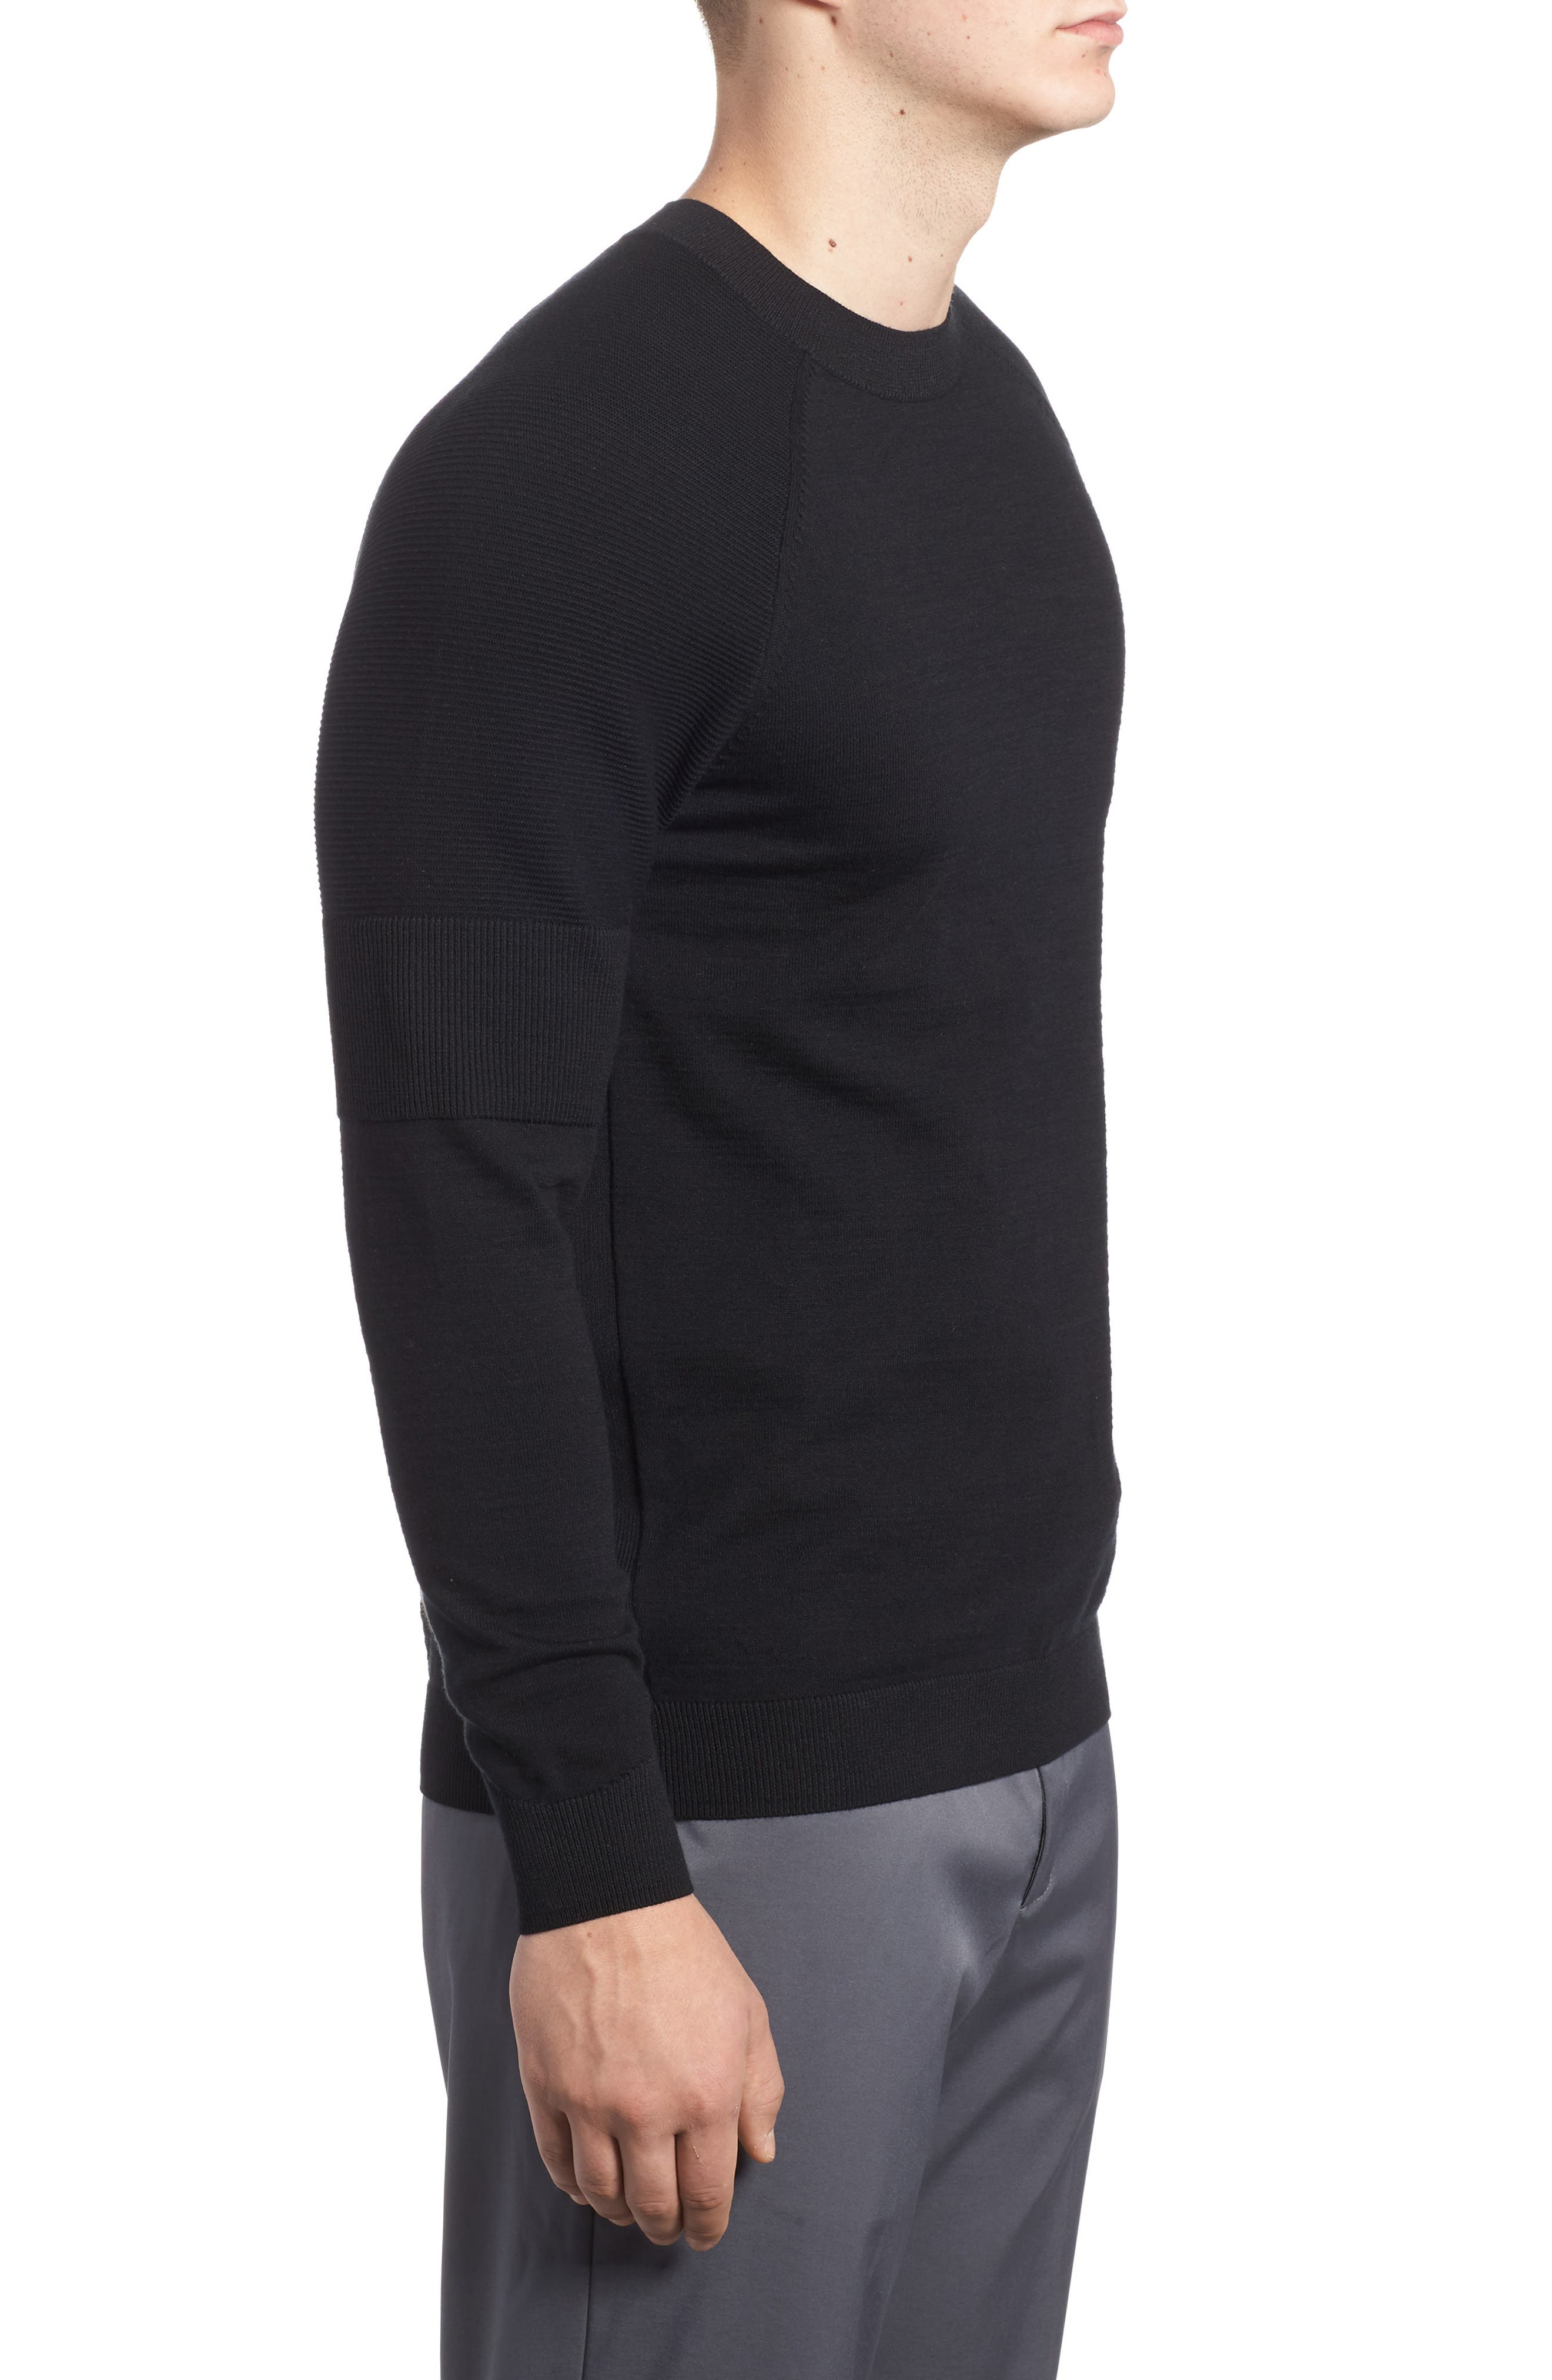 TW Cotton Blend Sweatshirt,                             Alternate thumbnail 3, color,